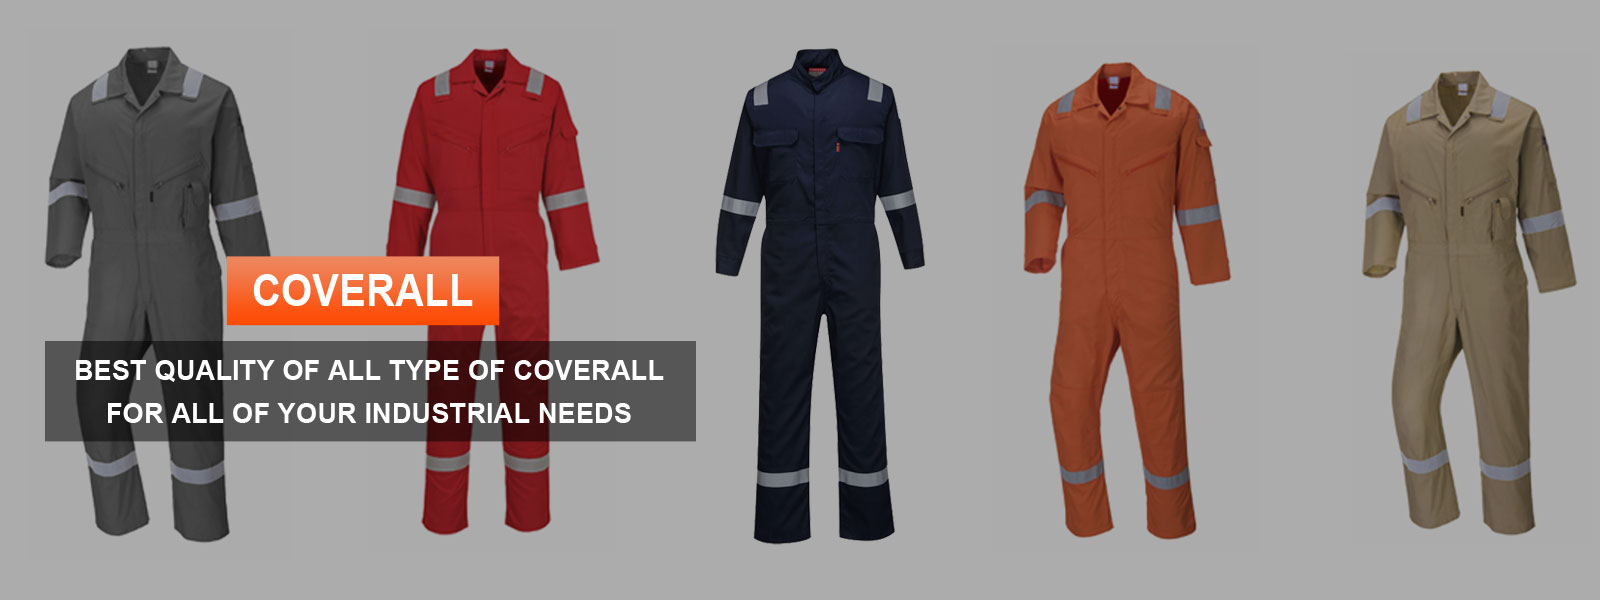 Coverall Manufacturers in Jamaica